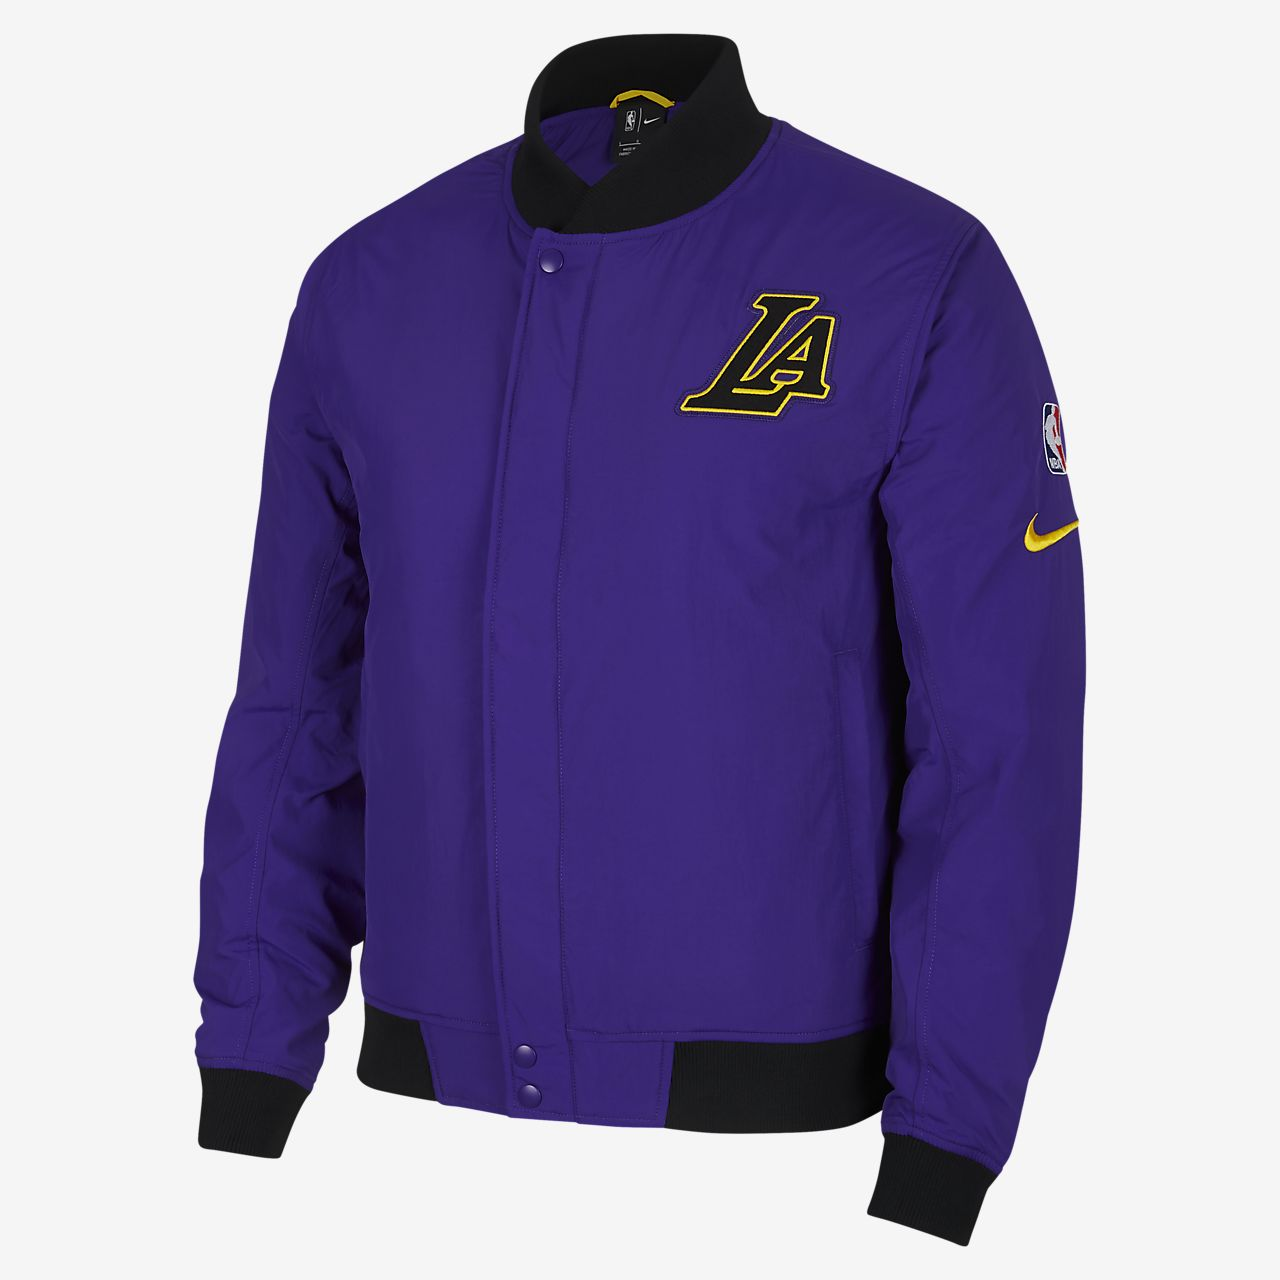 los angeles lakers nike courtside men s nba jacket nike com